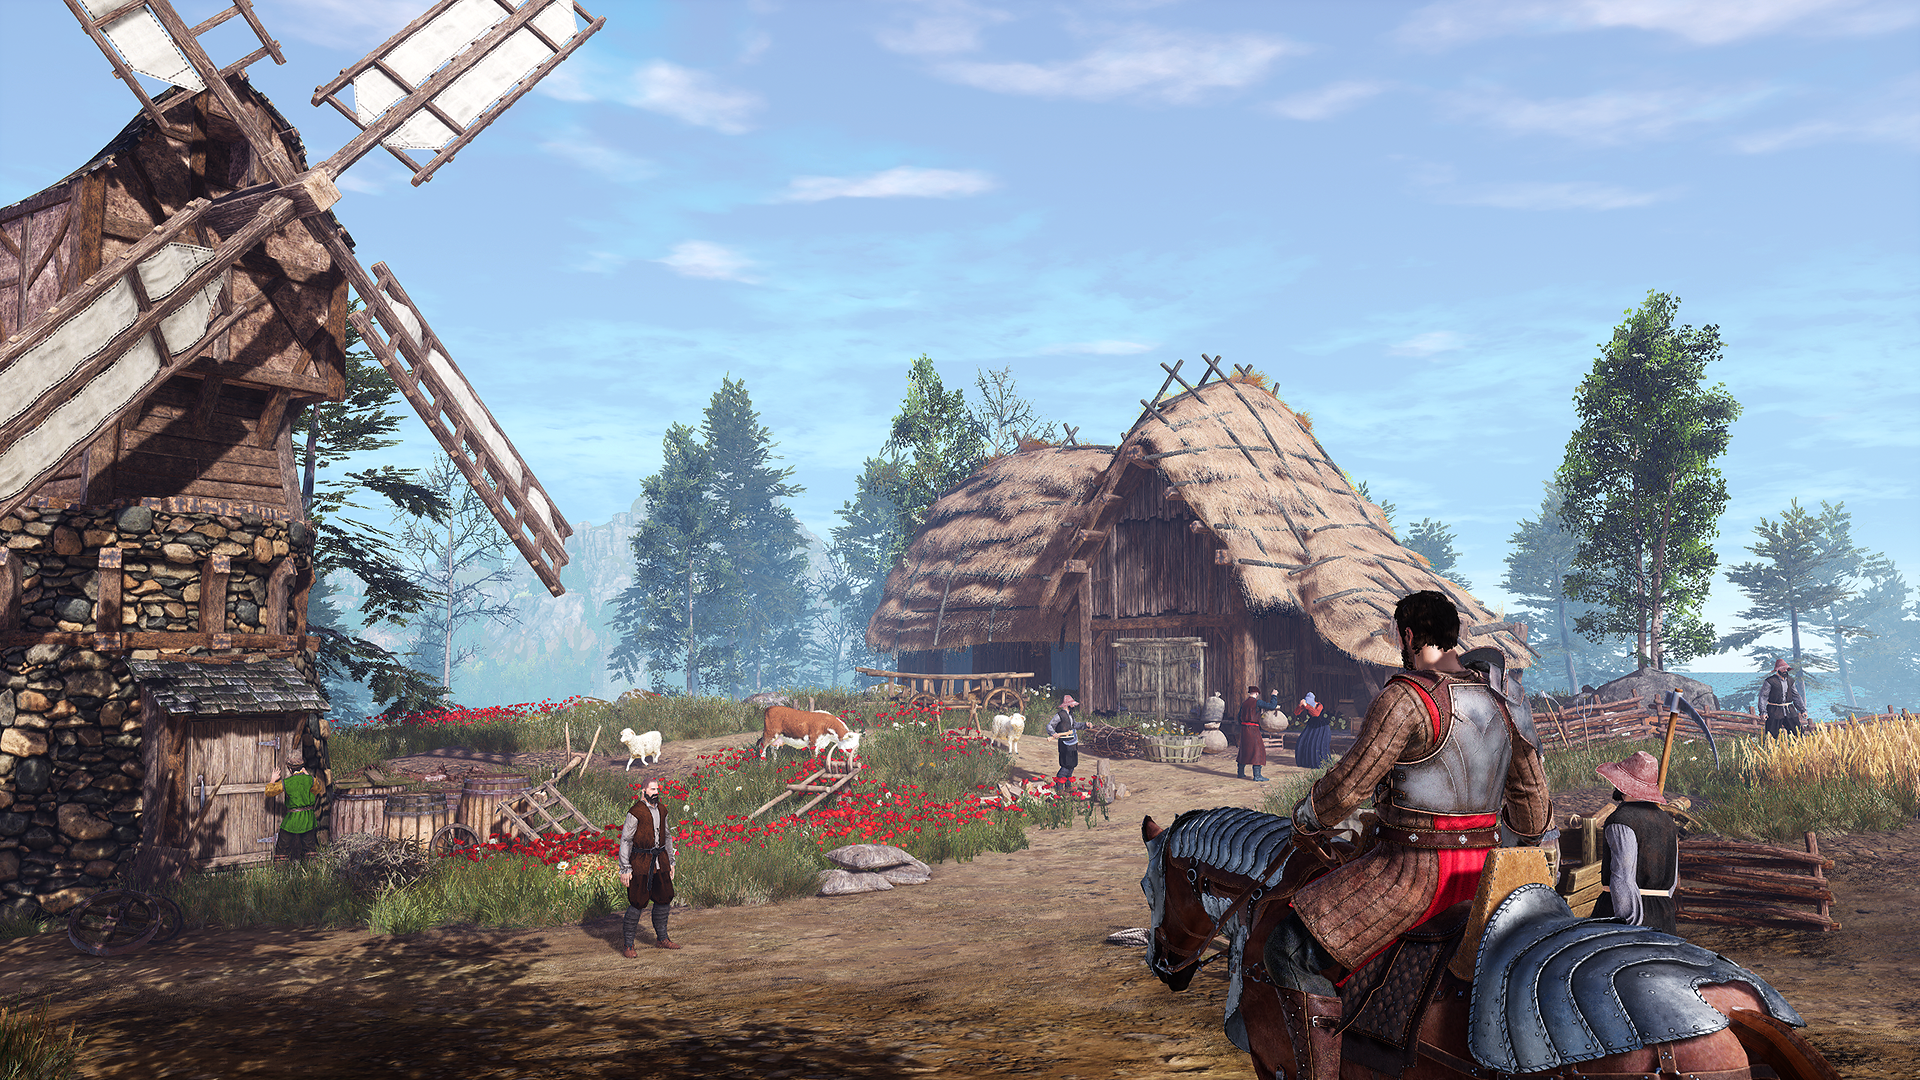 1C Entertainment's Gamescom 2019 Lineup Will Give People a Look at Devil's Hunt and Other Games